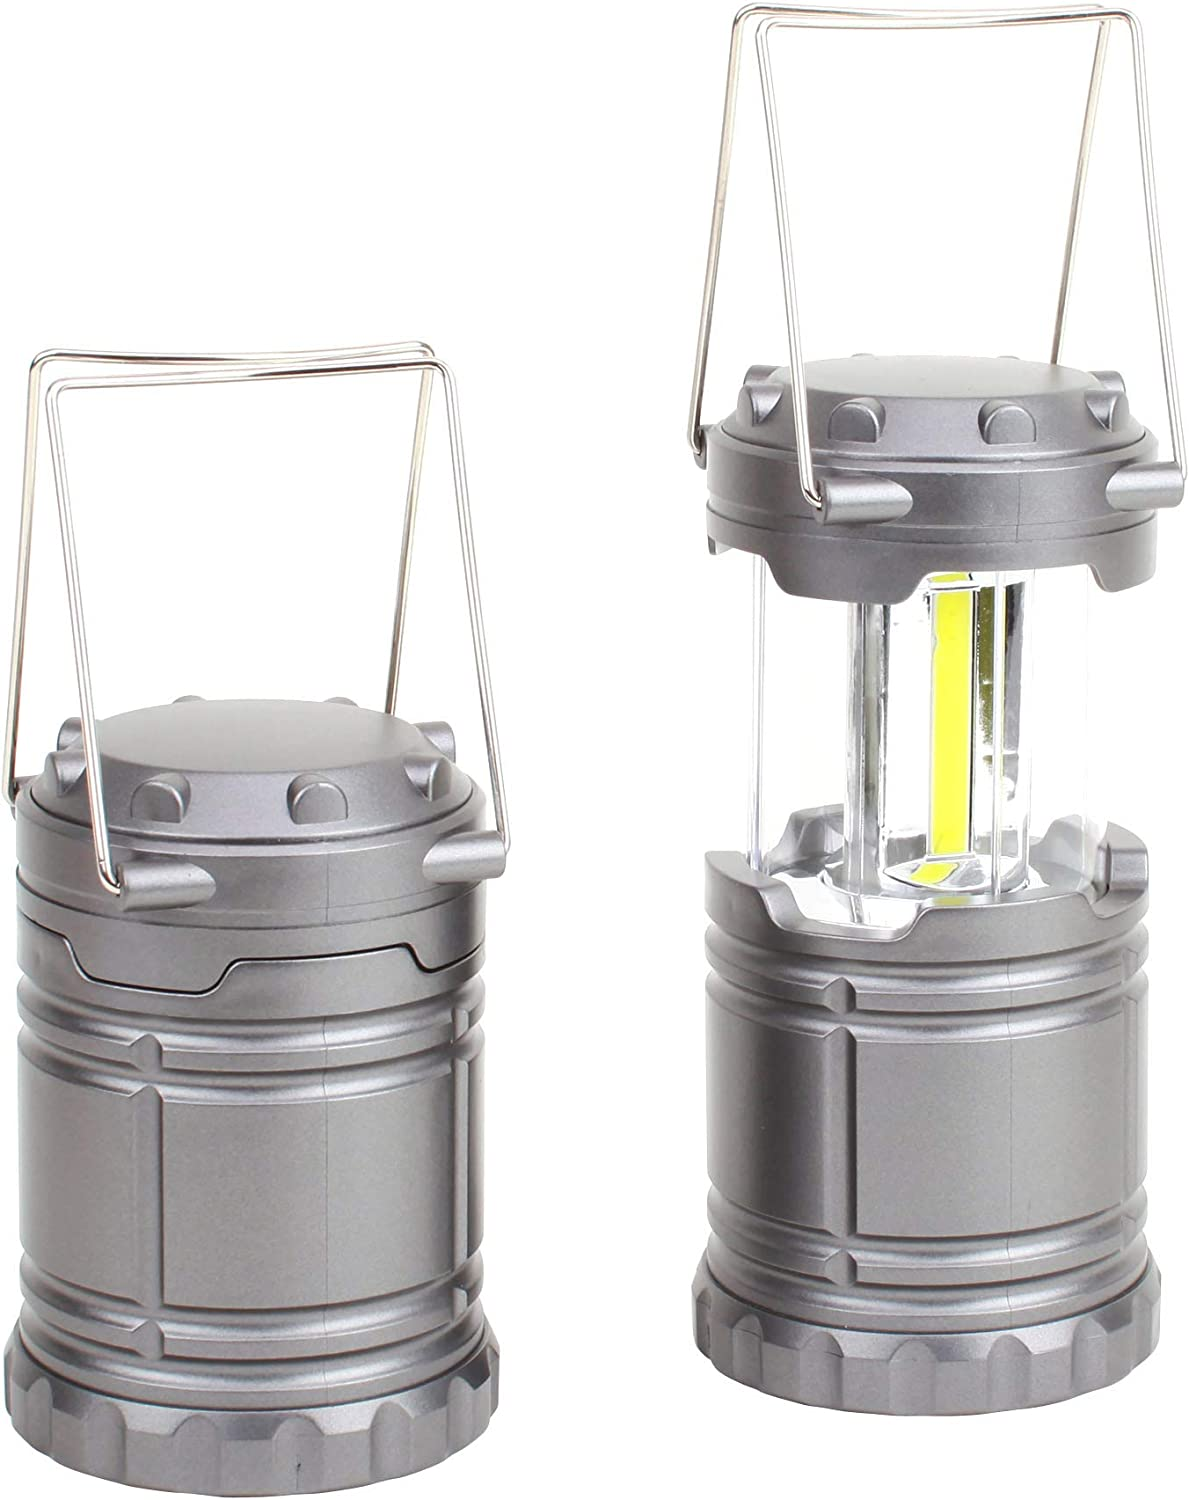 FASTPRO 2 Pack Outdoor LED Camping Lantern Set, Super Bright COB Strip LED, Portable and Collapsible Lanterns, Perfect for Camping, BBQ, Tent light, Workshops, Emergencies, Outages, Batteries Included